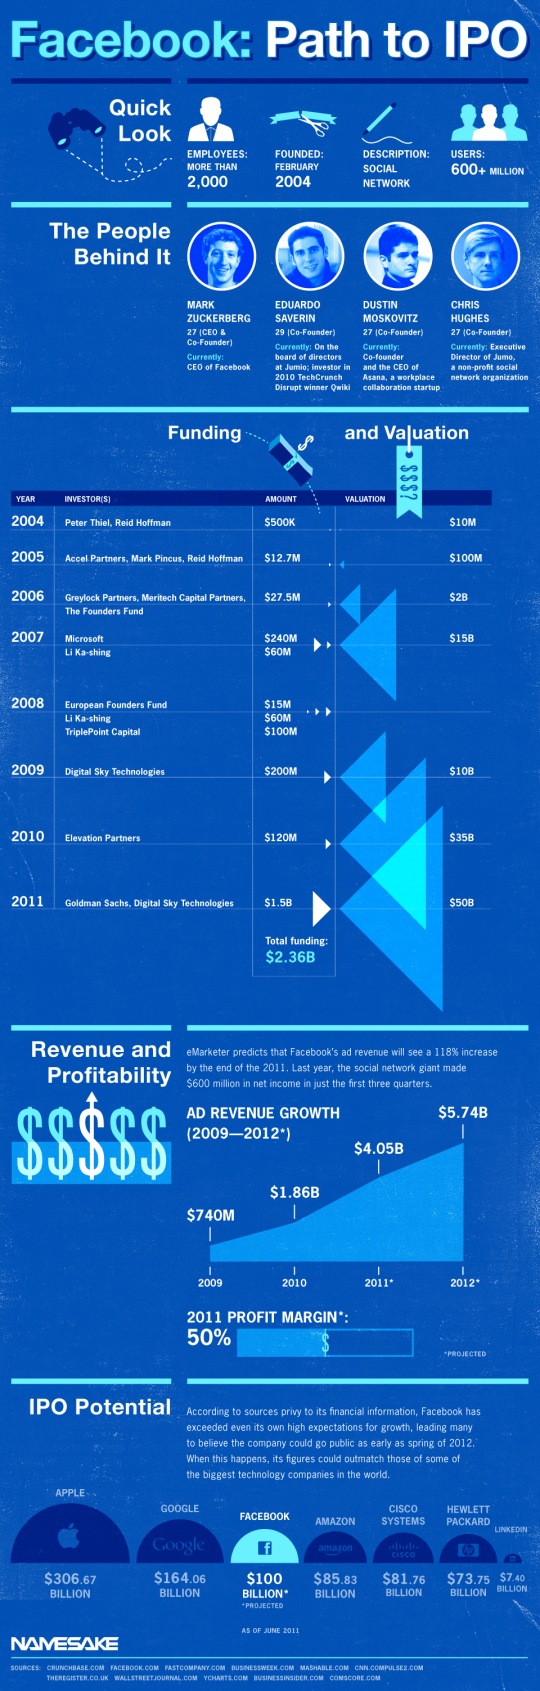 Facebook's Path to IPO